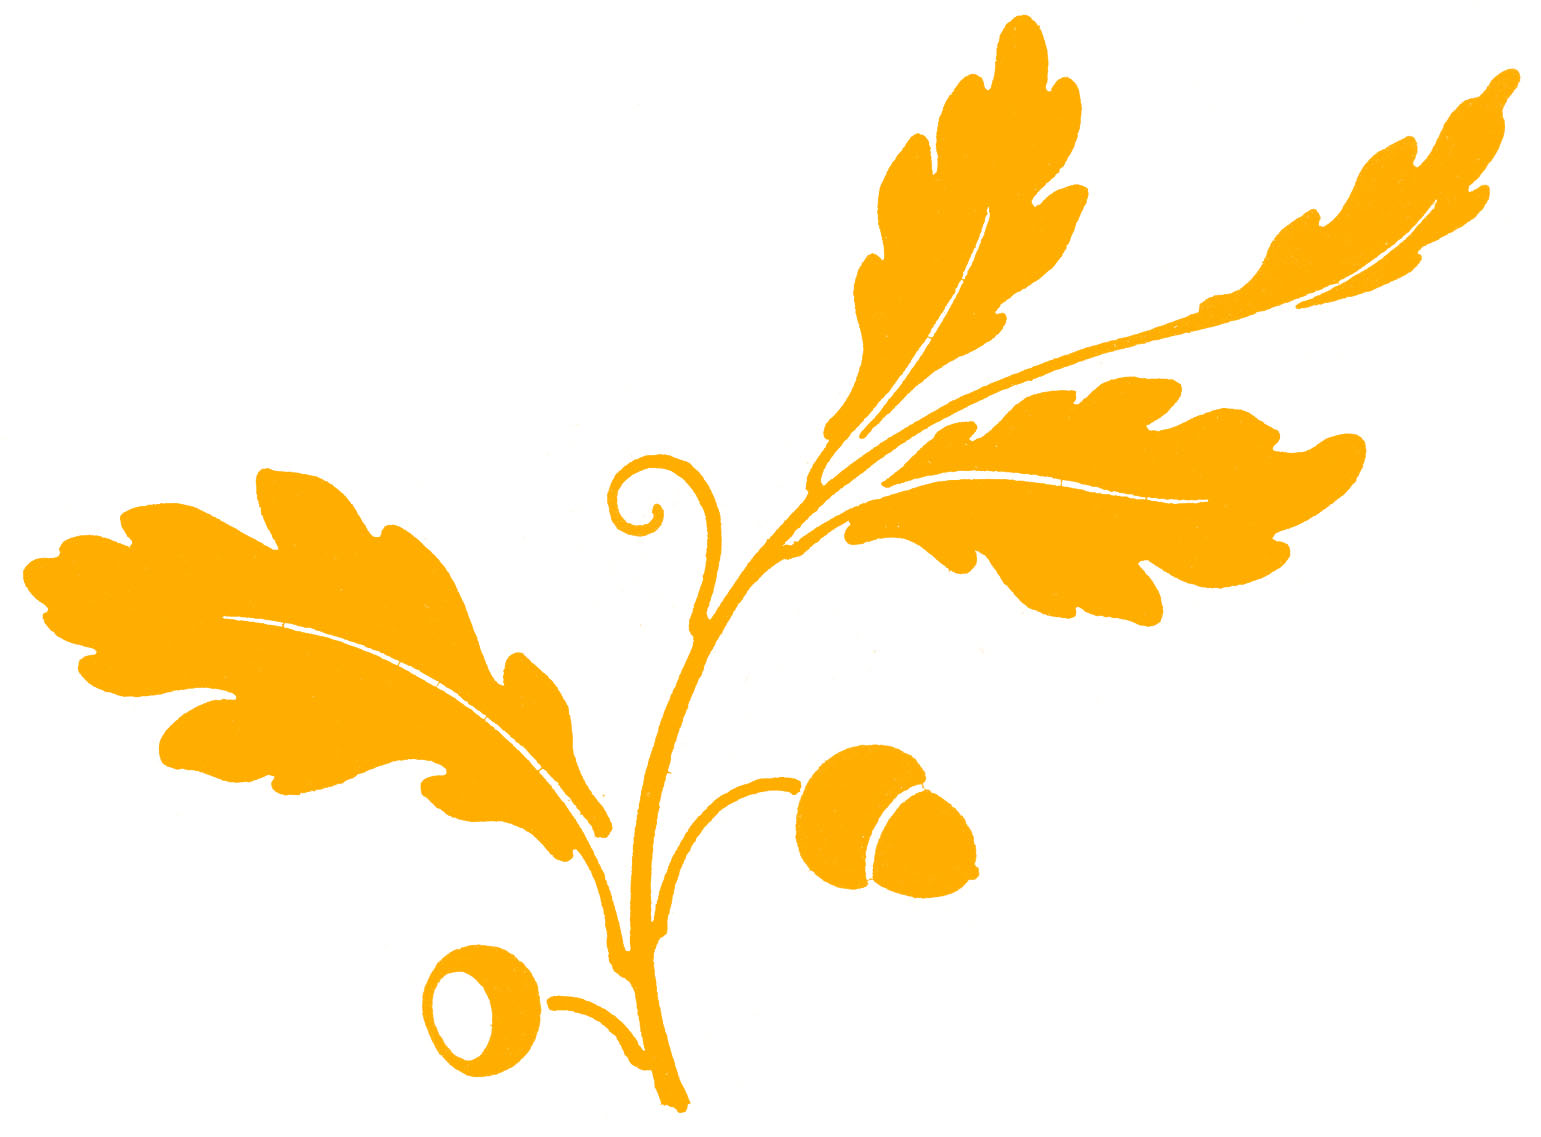 Gold Acorns and Oak Leaves Silhouette Image